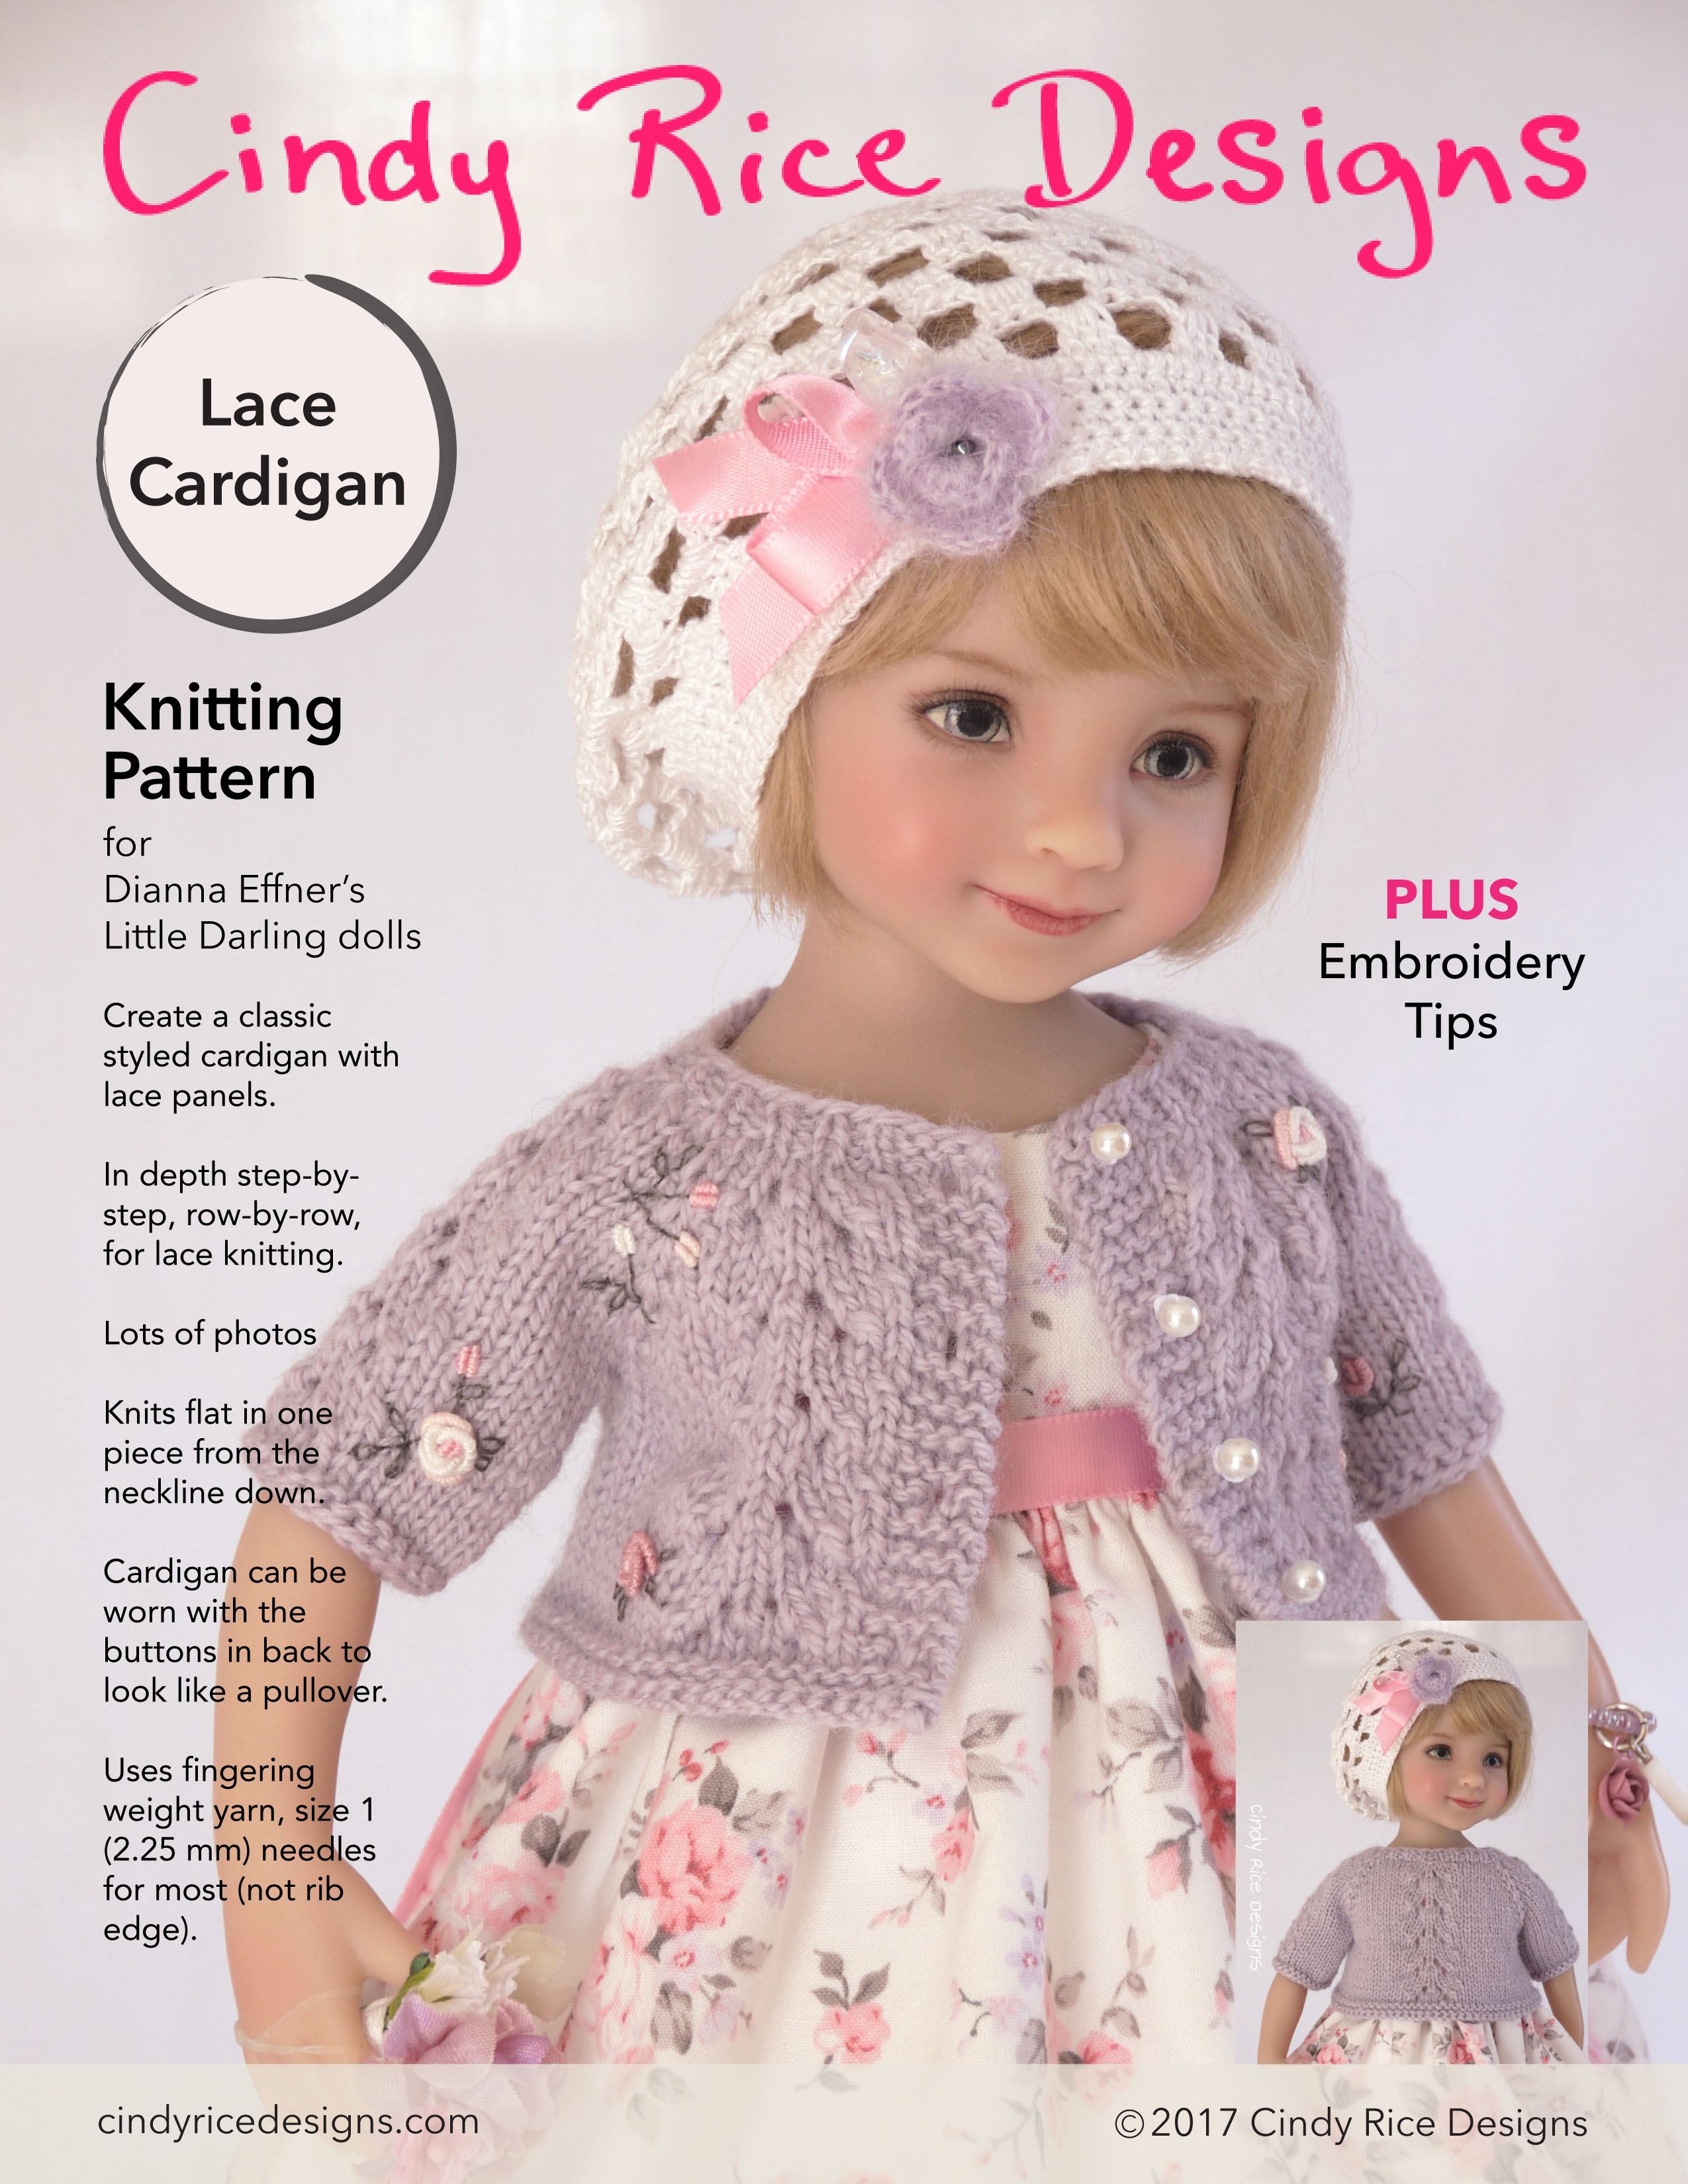 LD lace cardigan pattern p1 only